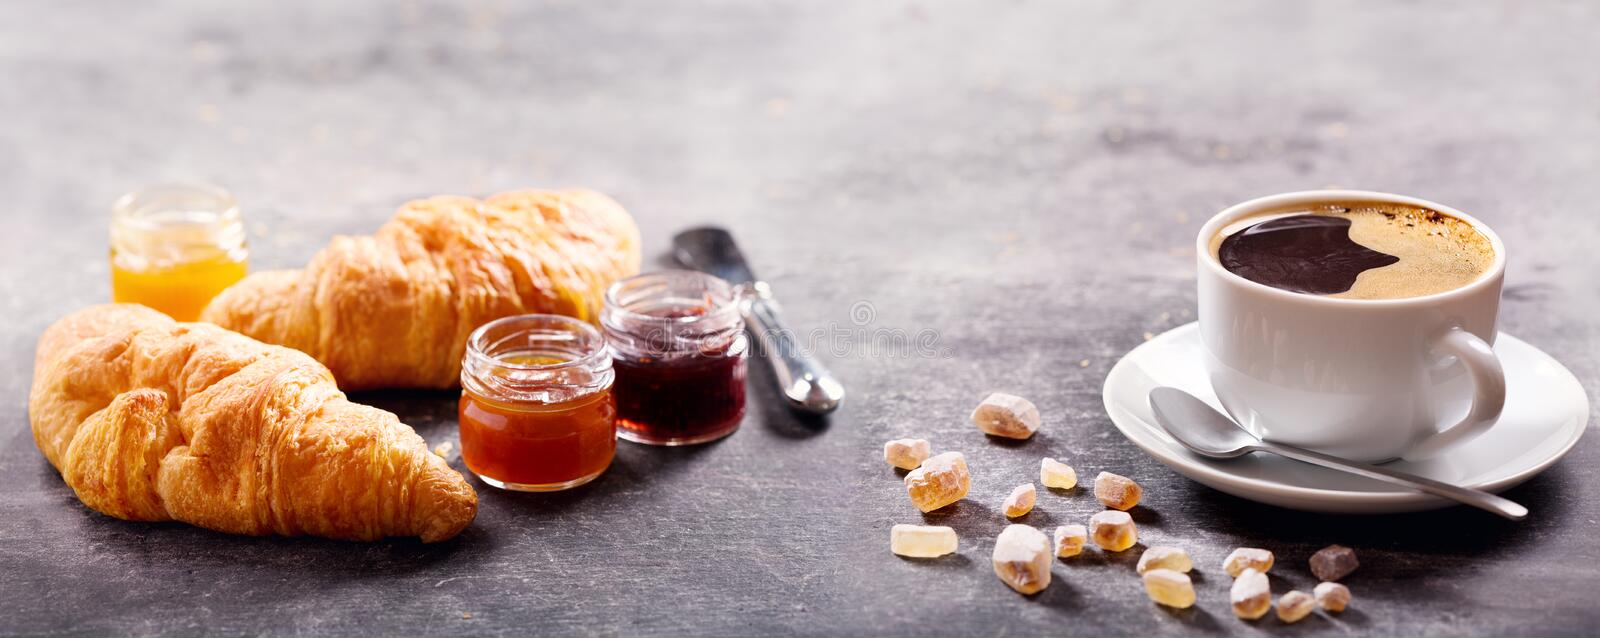 Breakfast with cup of coffee, croissant and fruit jam. On dark table royalty free stock images